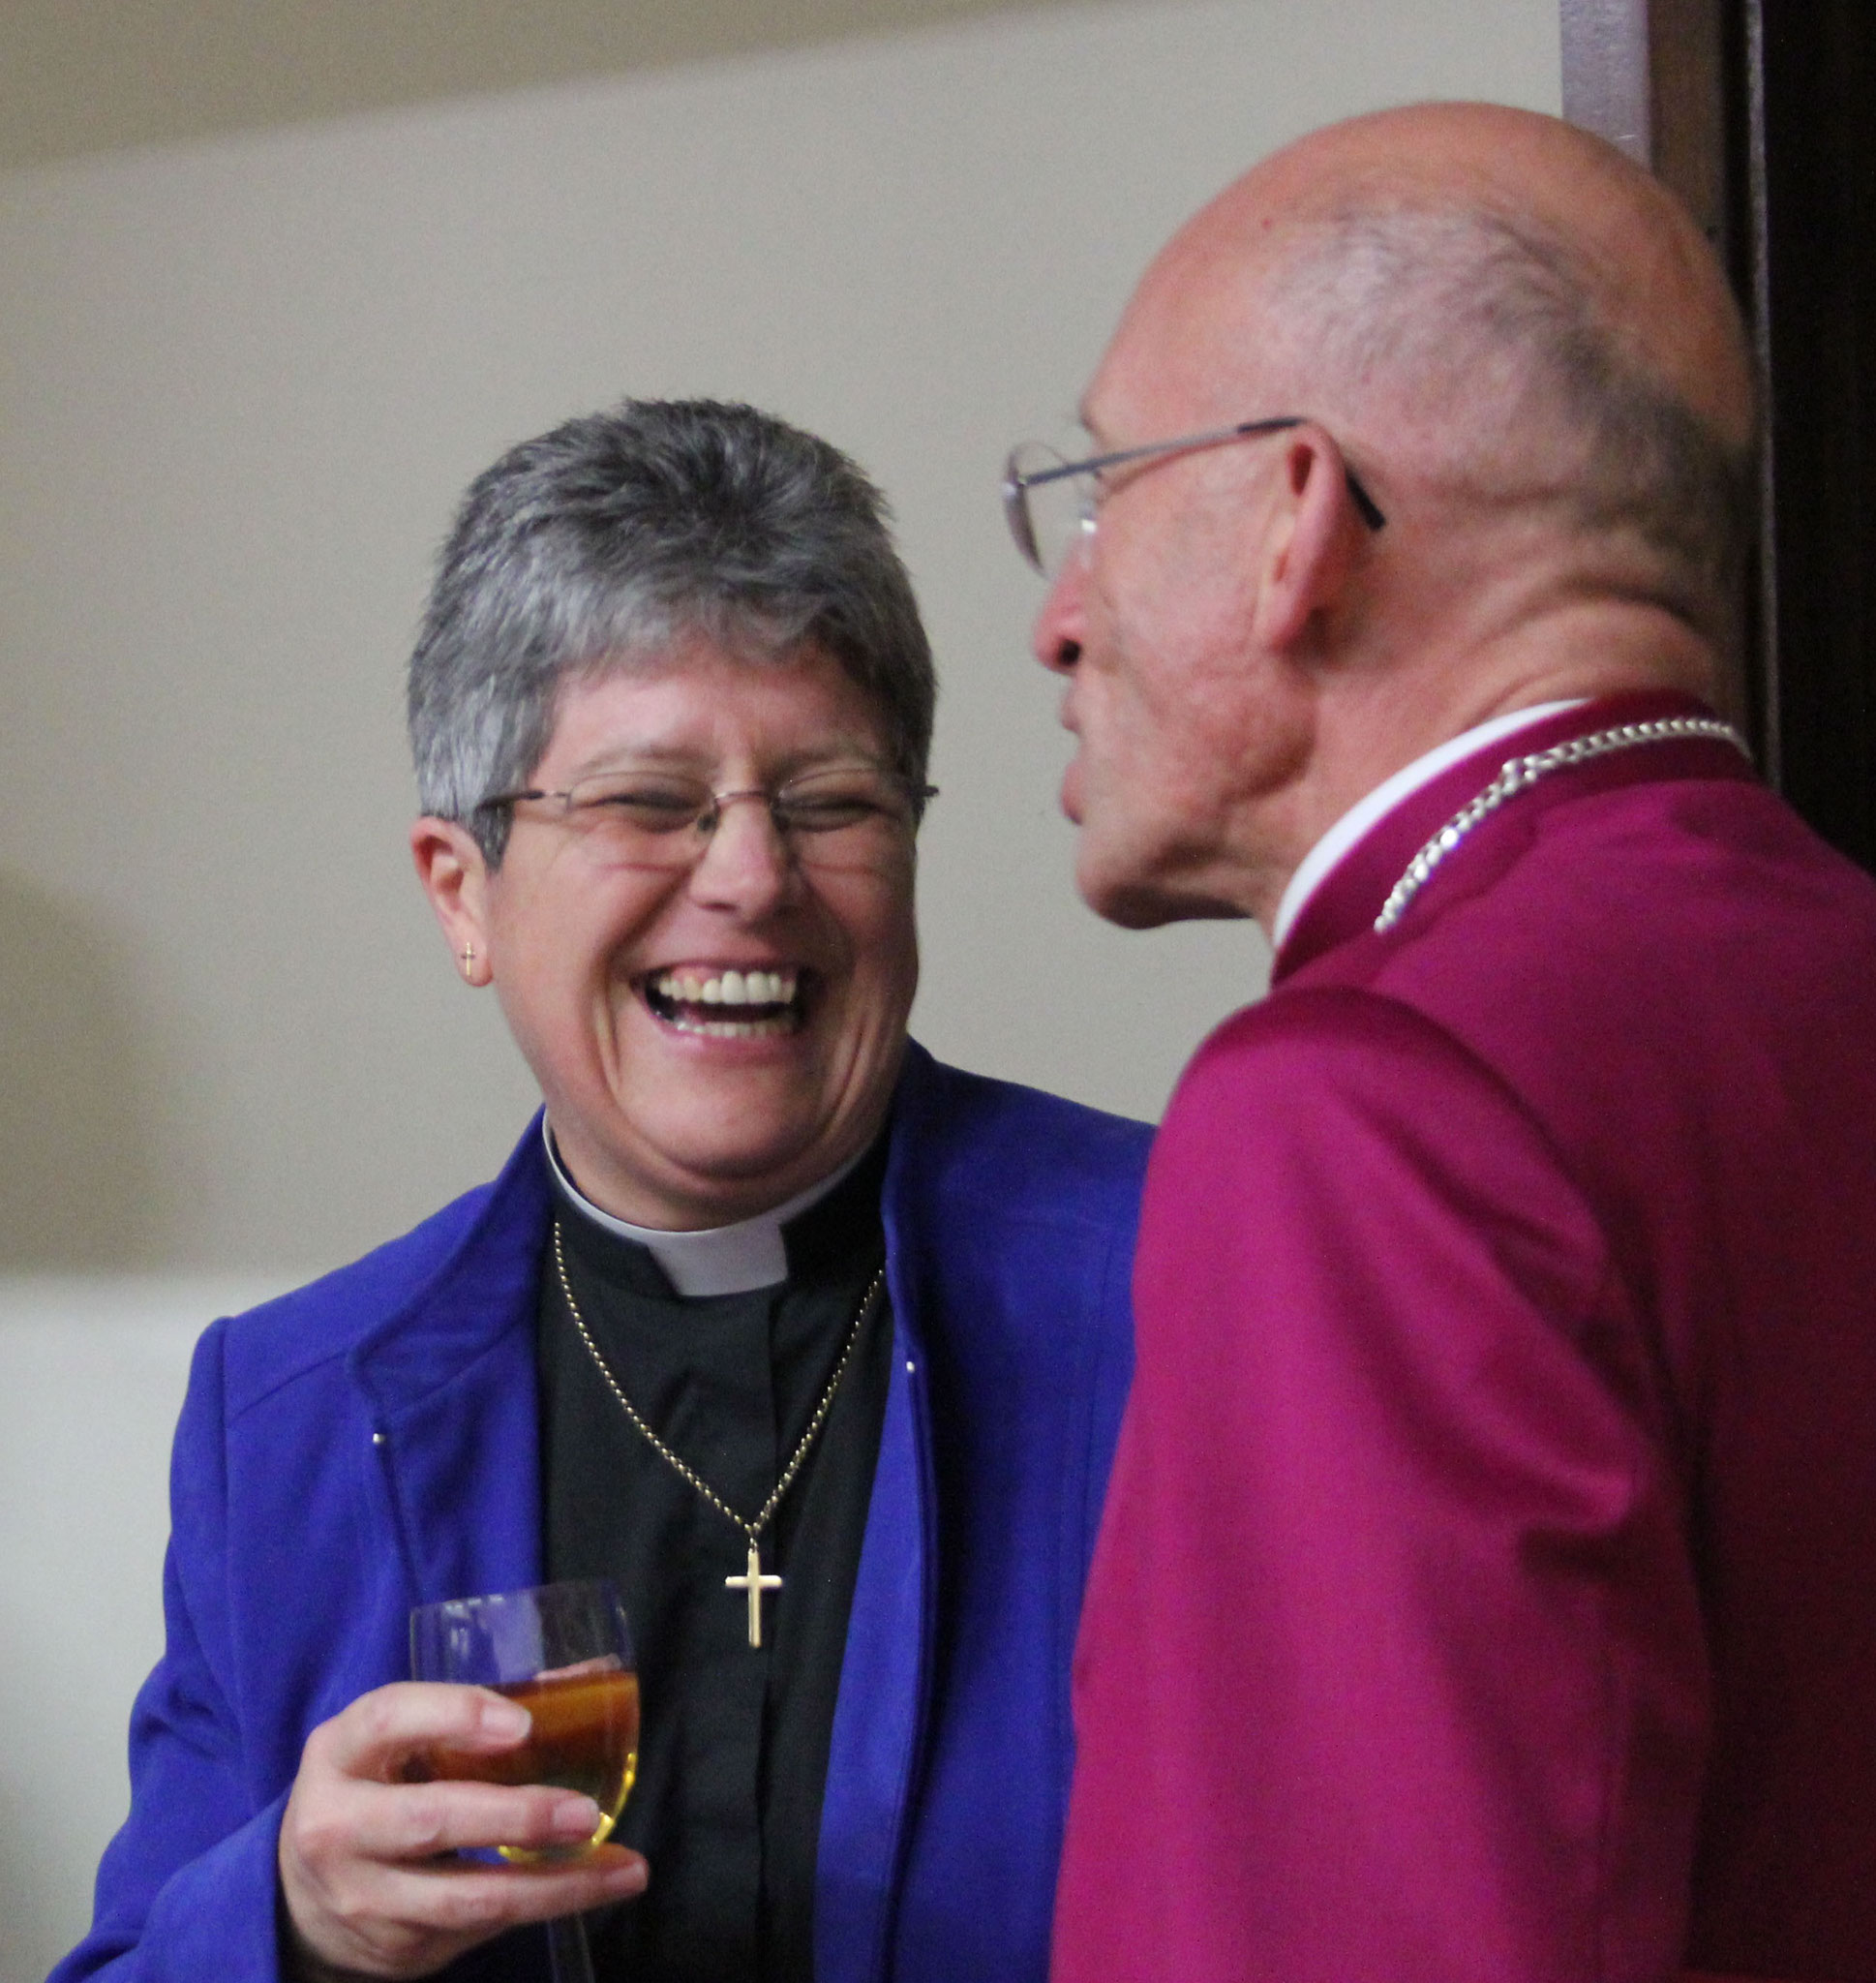 Revd Sandra Hall with the Bishop of Chichester